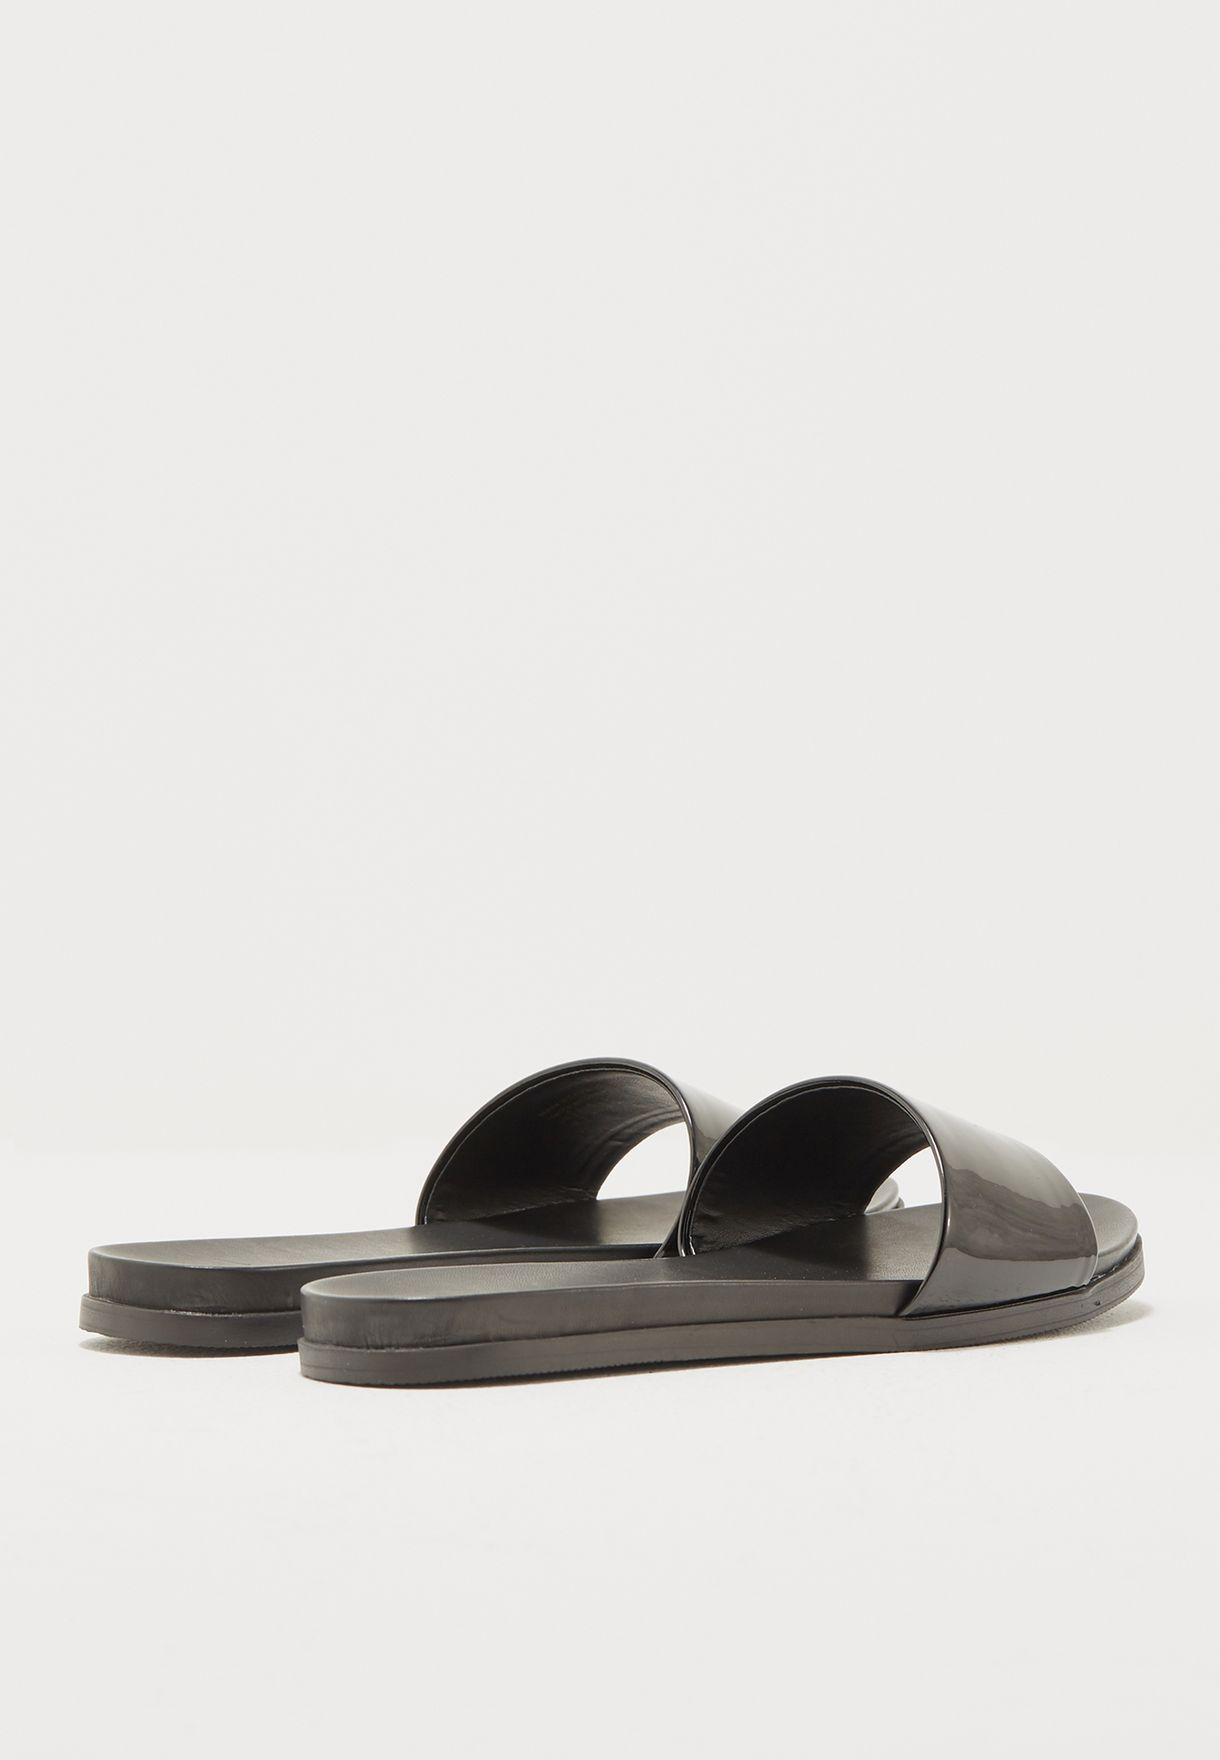 adee97df313 Shop Aldo black Fabrizzia Slide FABRIZZIA U95 for Women in Qatar ...